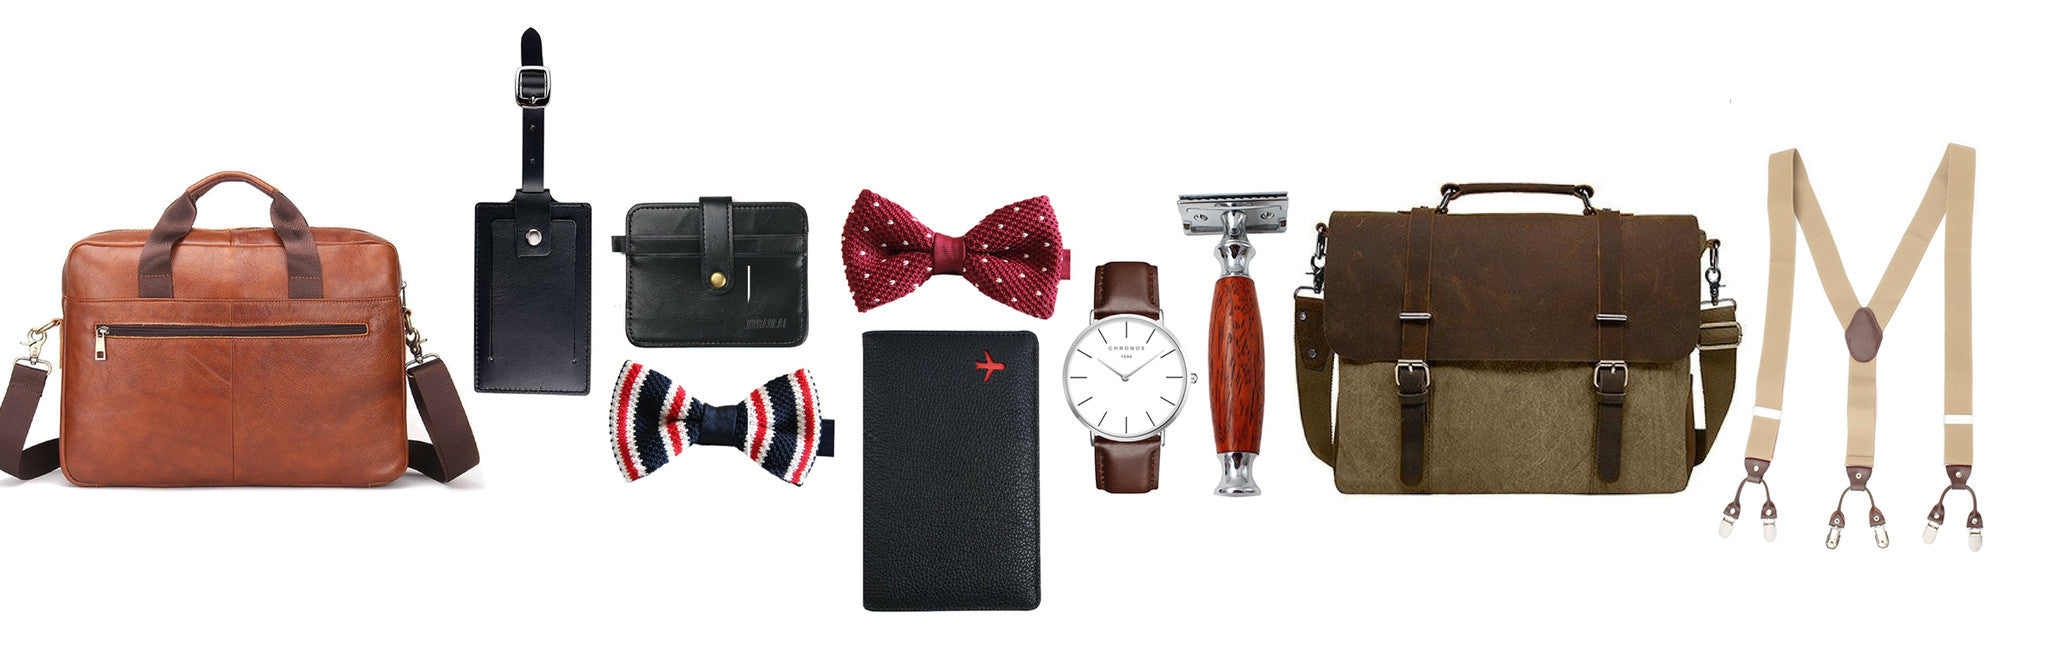 Men's accessories collection - modern man outfitters